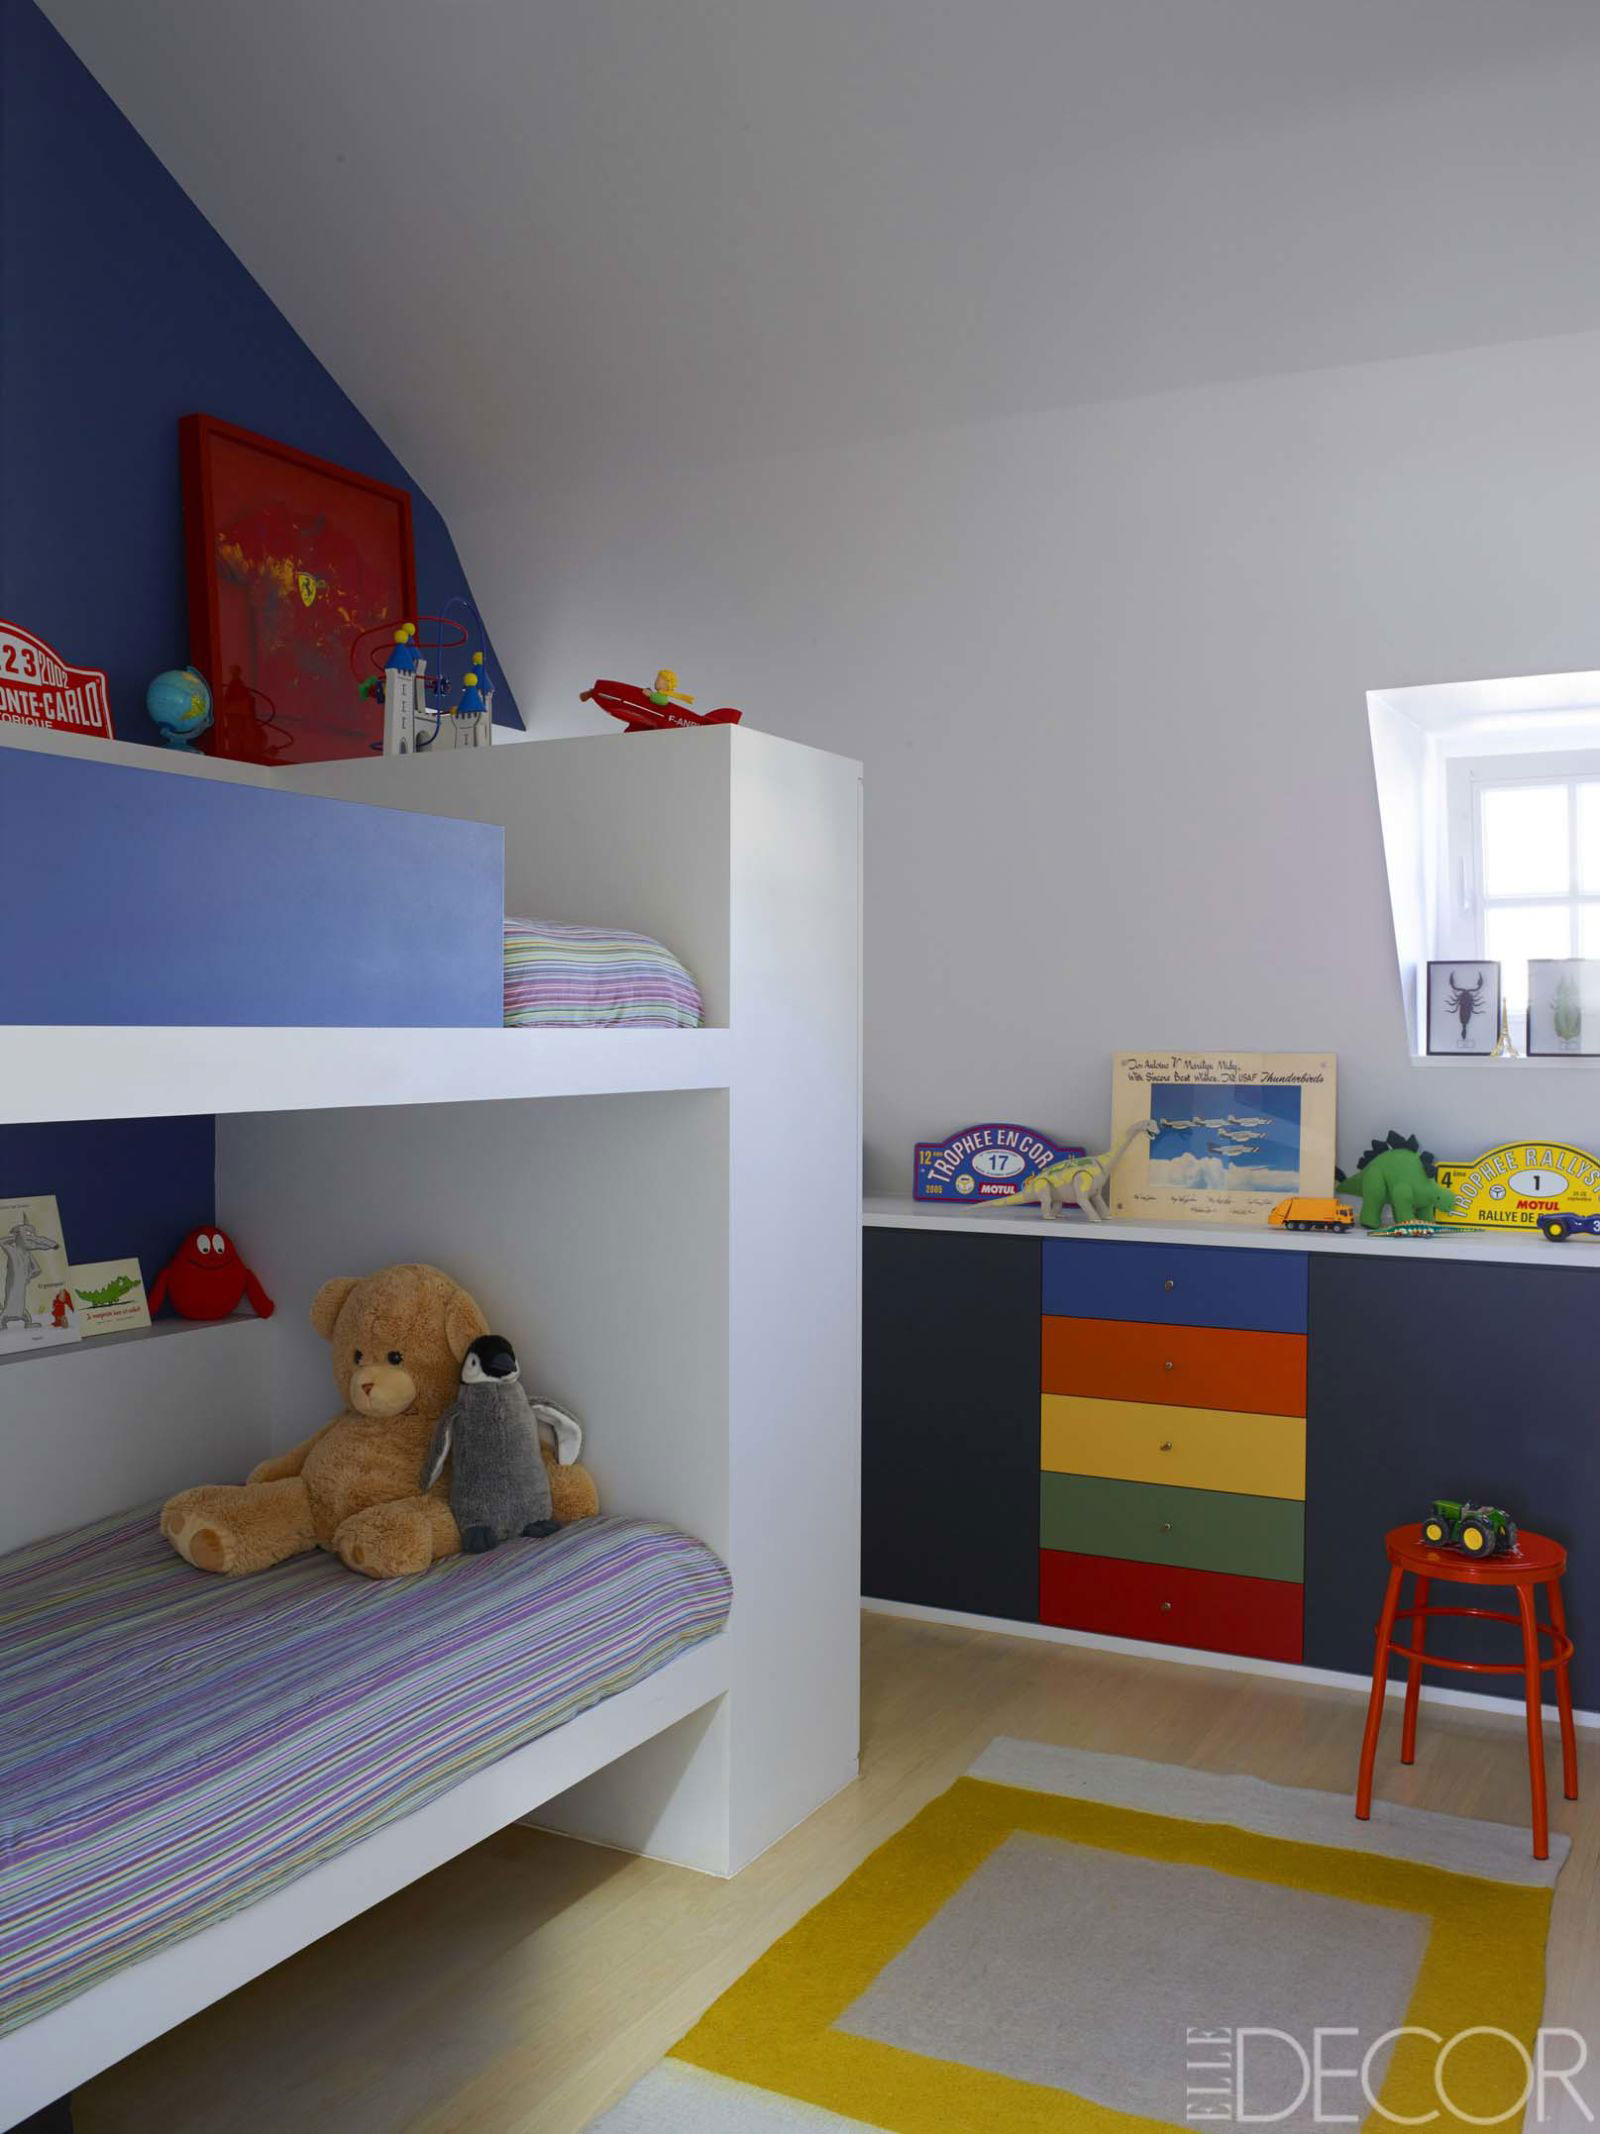 15 cool boys bedroom ideas decorating a little boy room best 20 kids room design ideas on pinterest